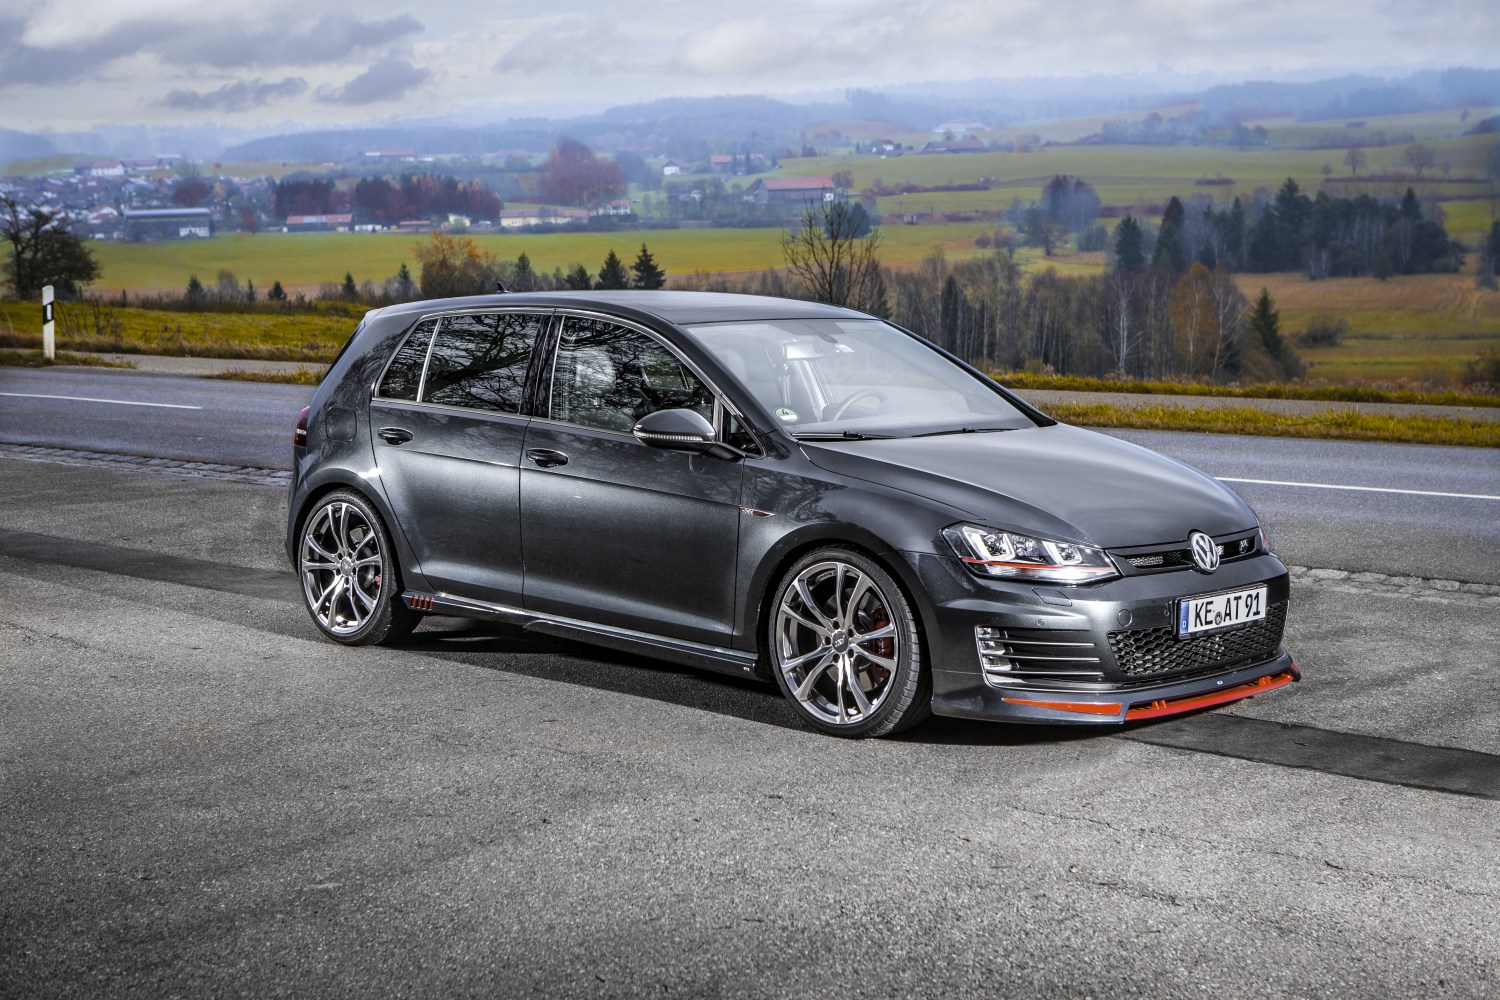 Abt Golf Vii Gti Gets Fresh Look Gtspirit